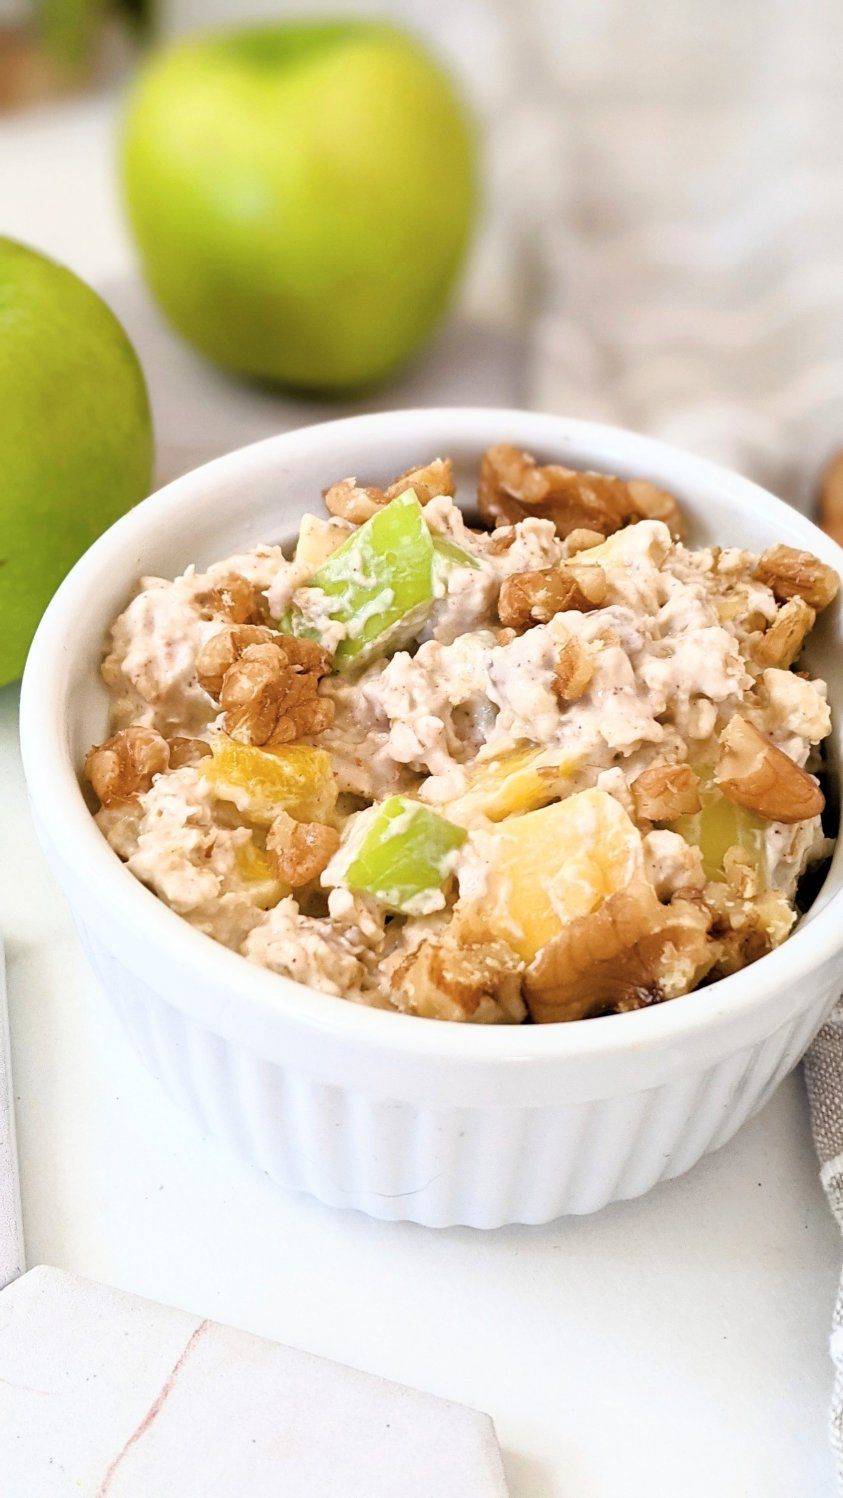 dairy free mango oats recipe vegan overnight oats with apples mangoes walnuts almonds and rolled oats recipes whole foods plant based wfpb